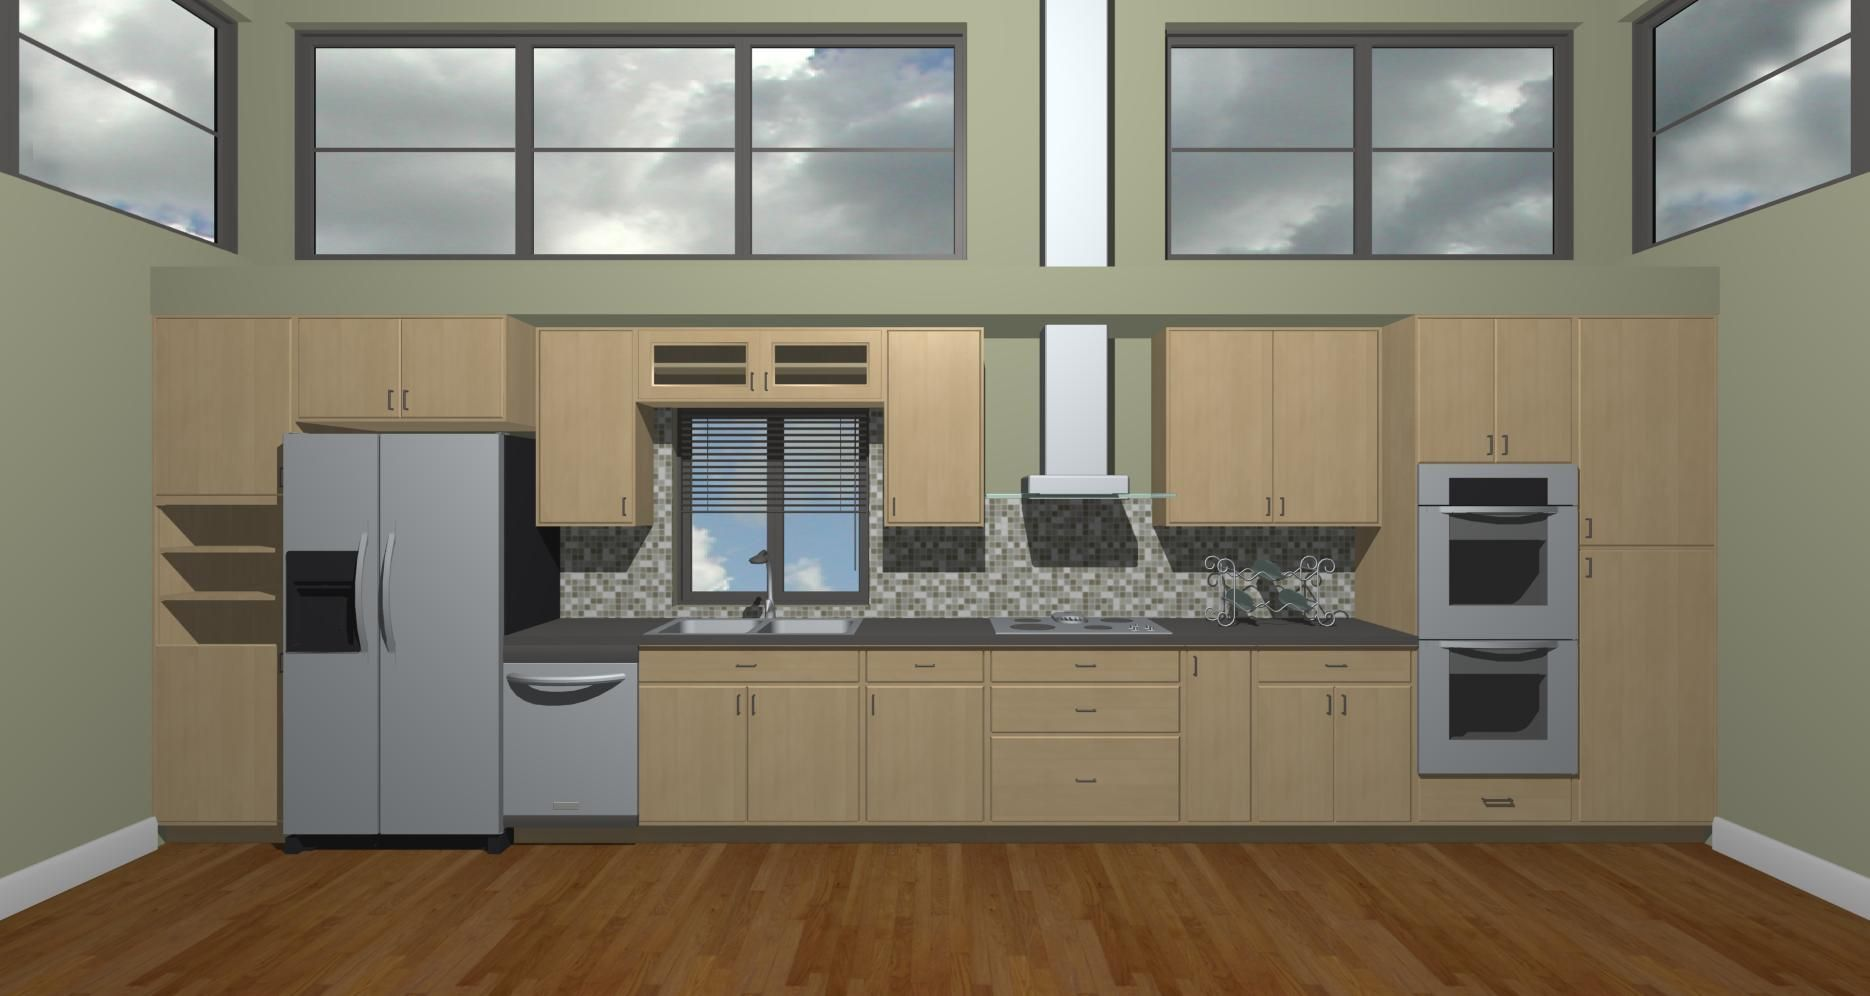 Straight Line Kitchen Closest Design To What We Want Straight